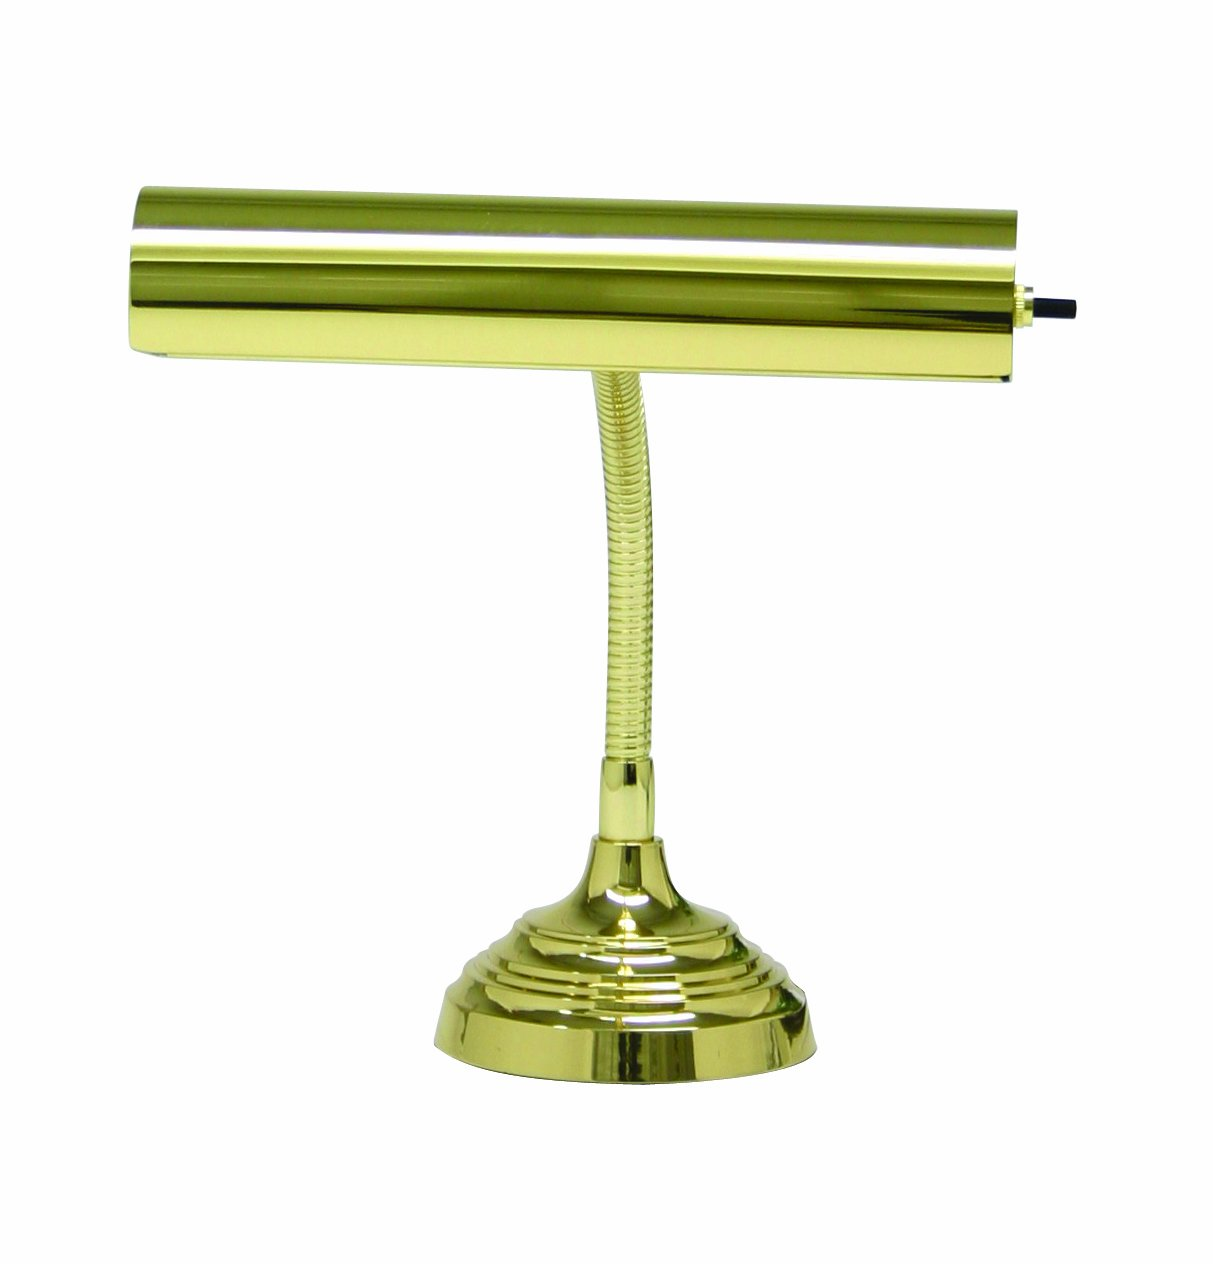 House Of Troy AP10-20-61 Advent Collection Gooseneck Portable Piano/Desk Lamp, 11-1/2''H x 10''W, Polished Brass